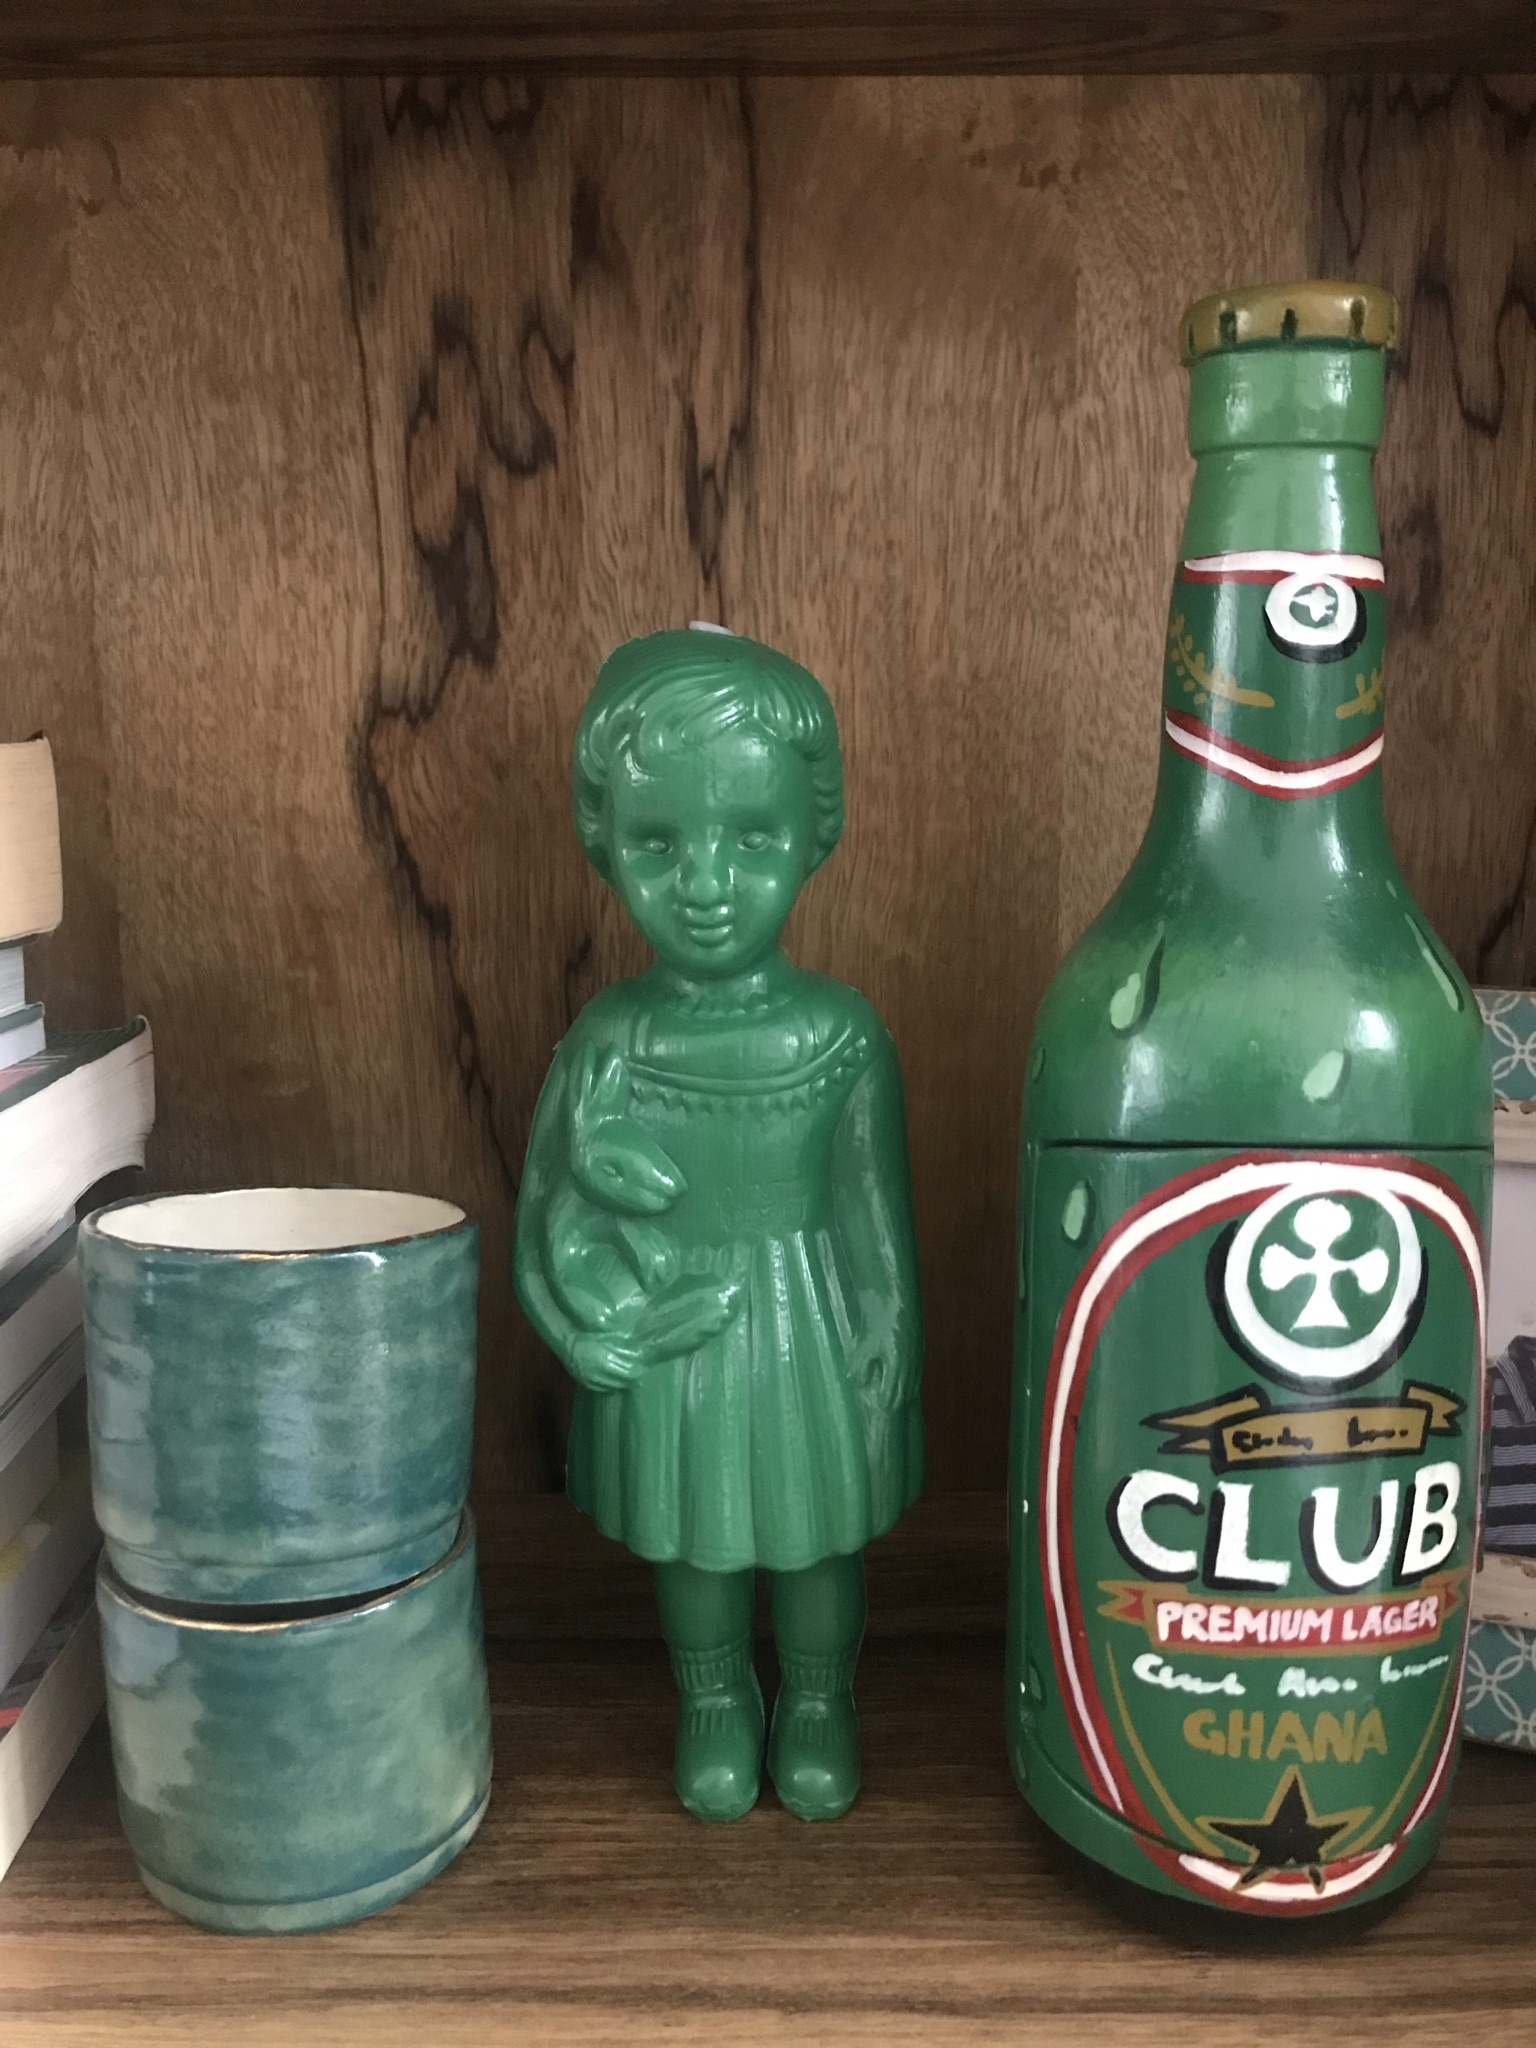 A green plastic Clonette Doll stands on our bookshelf next to a wooden mimic of a Ghanaian fantasy coffin in the shape of a Club beer bottle.